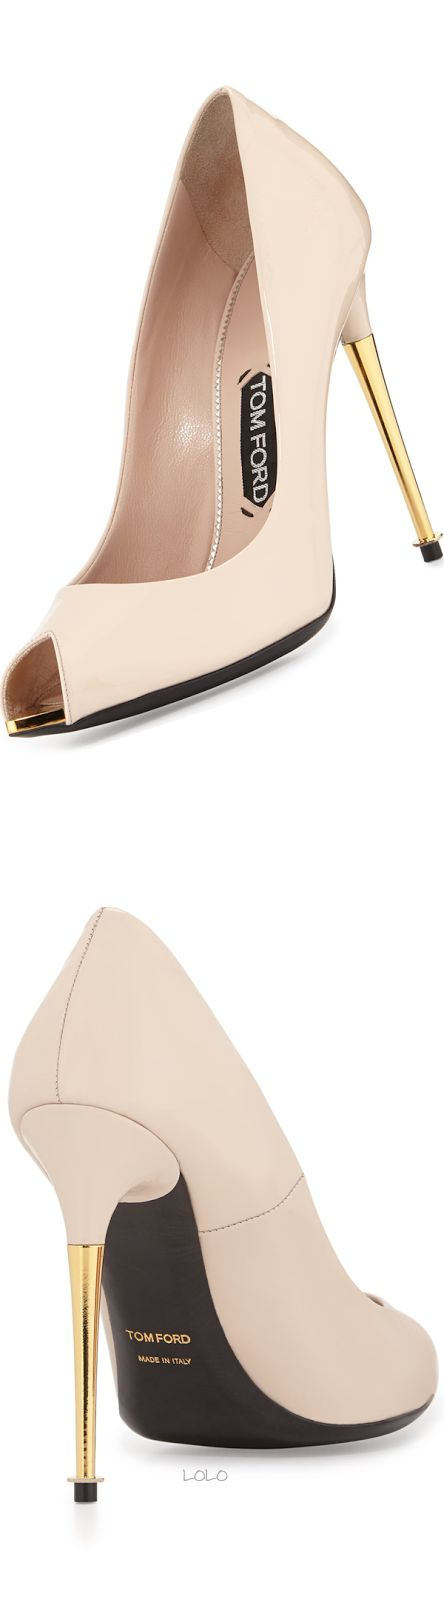 Tom Ford V-Cut Peep-Toe Patent Pump, Nude | LOLO